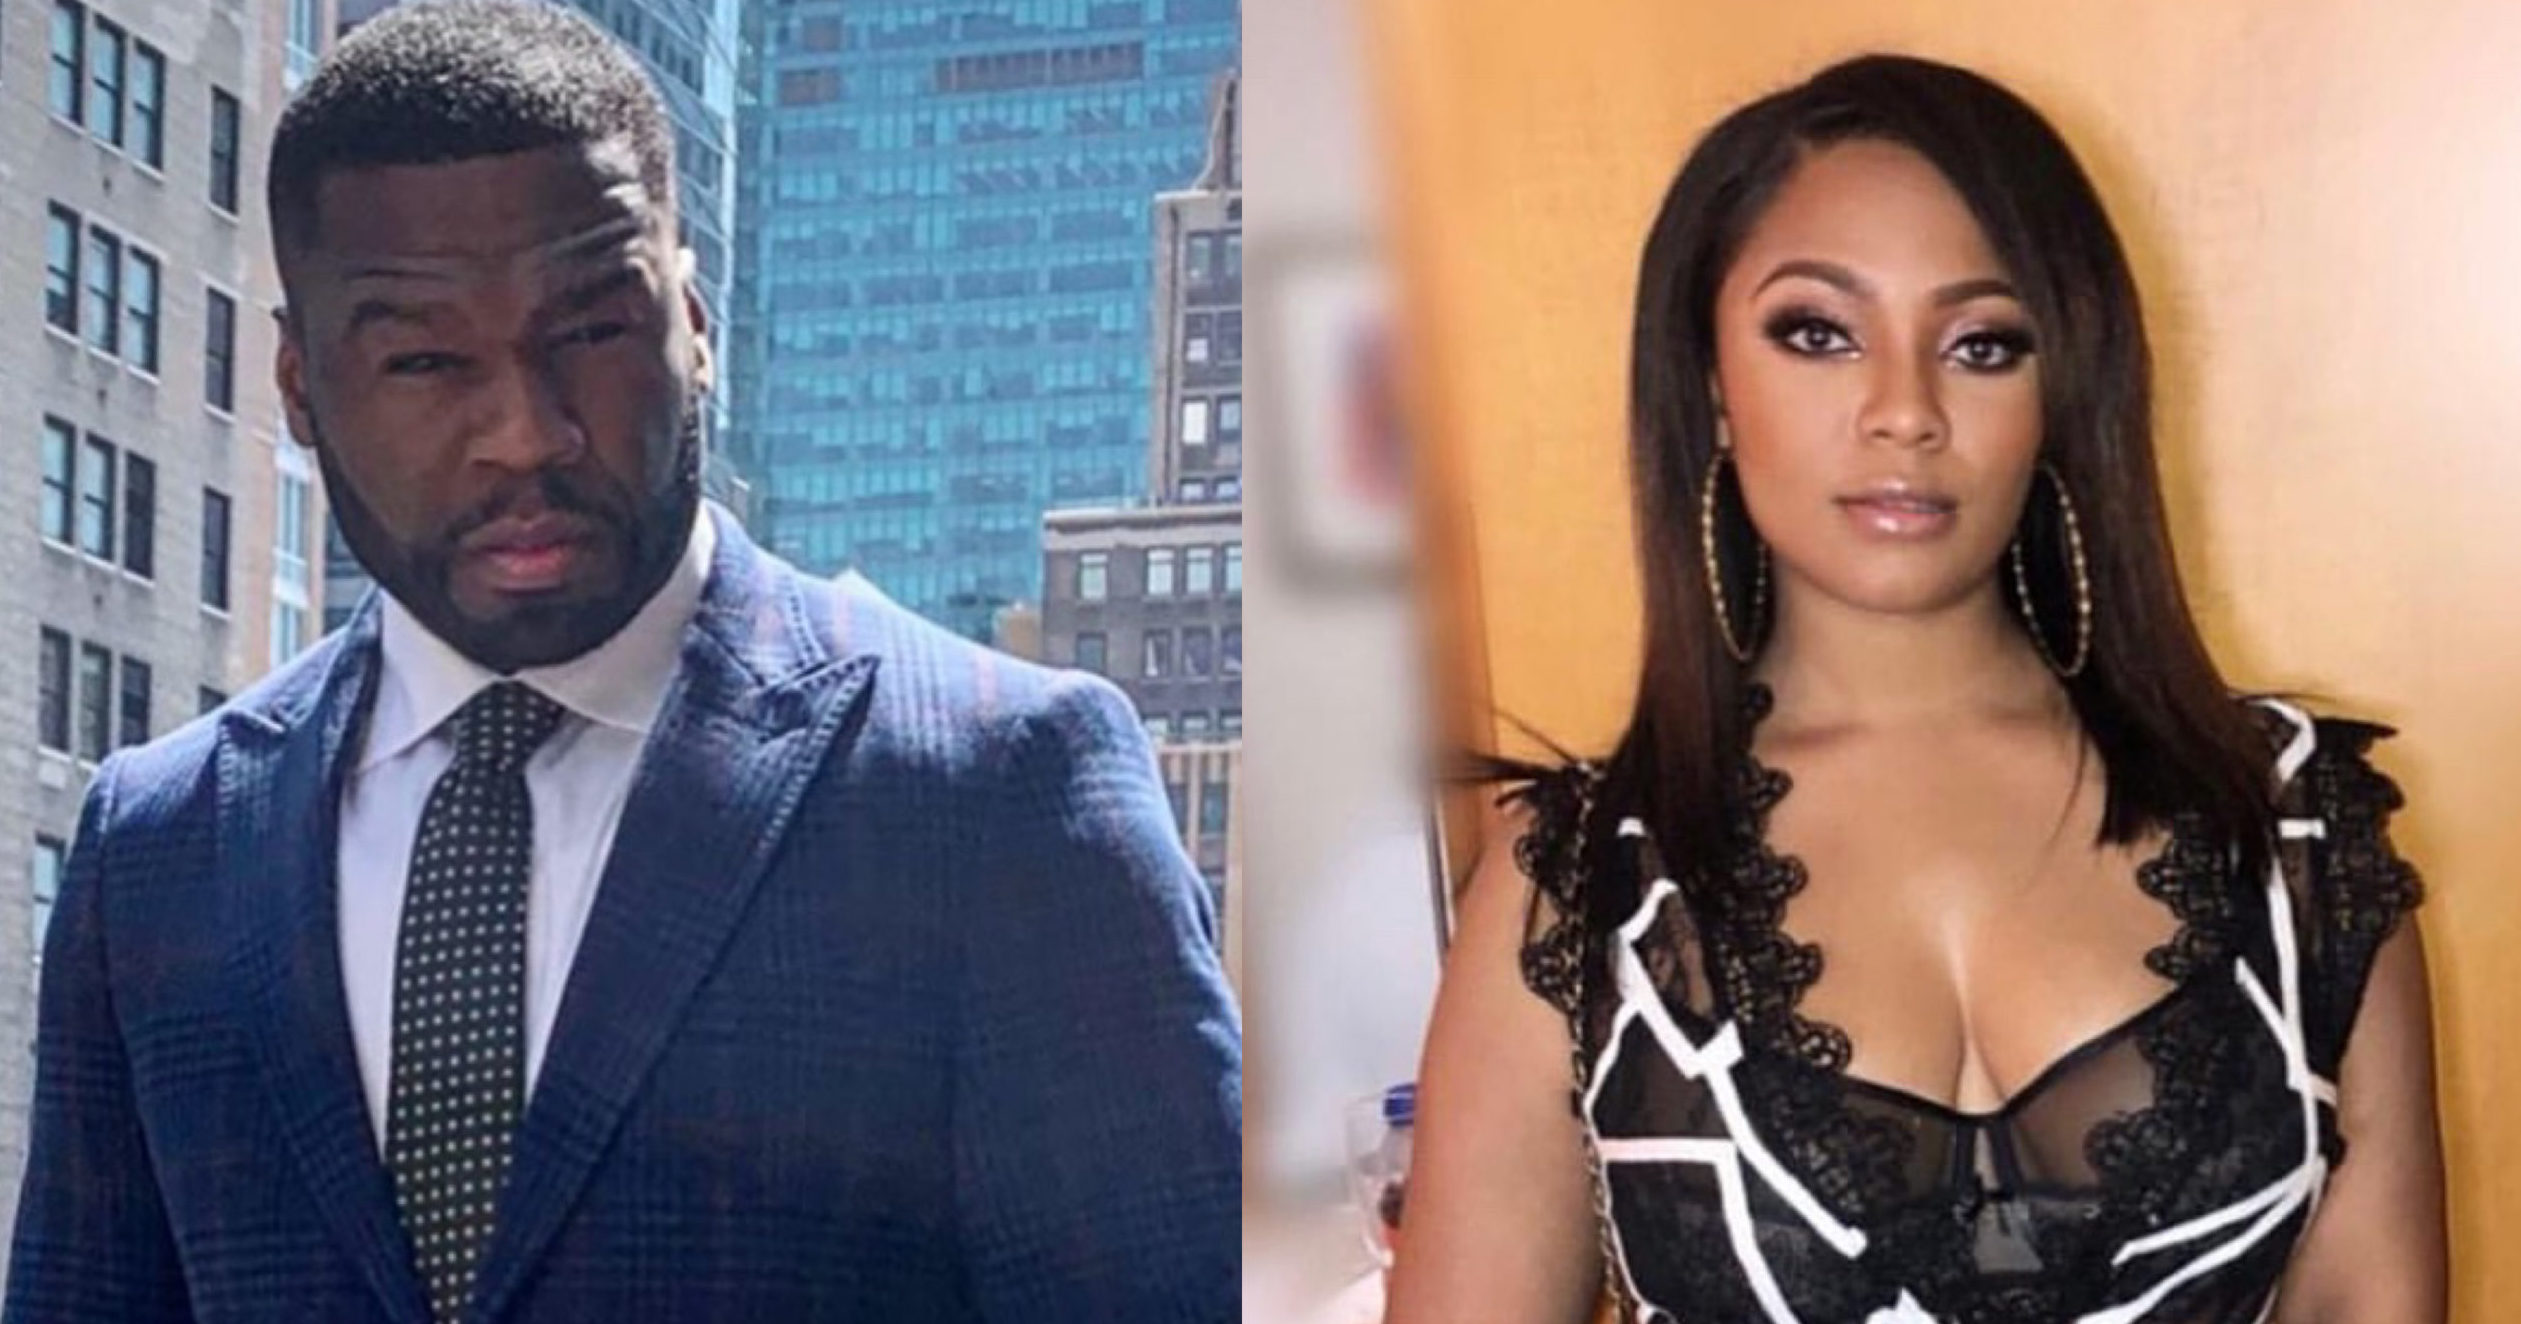 50 Cent Video Porno teairra mari ordered to pay 50 cent an additional $5,295